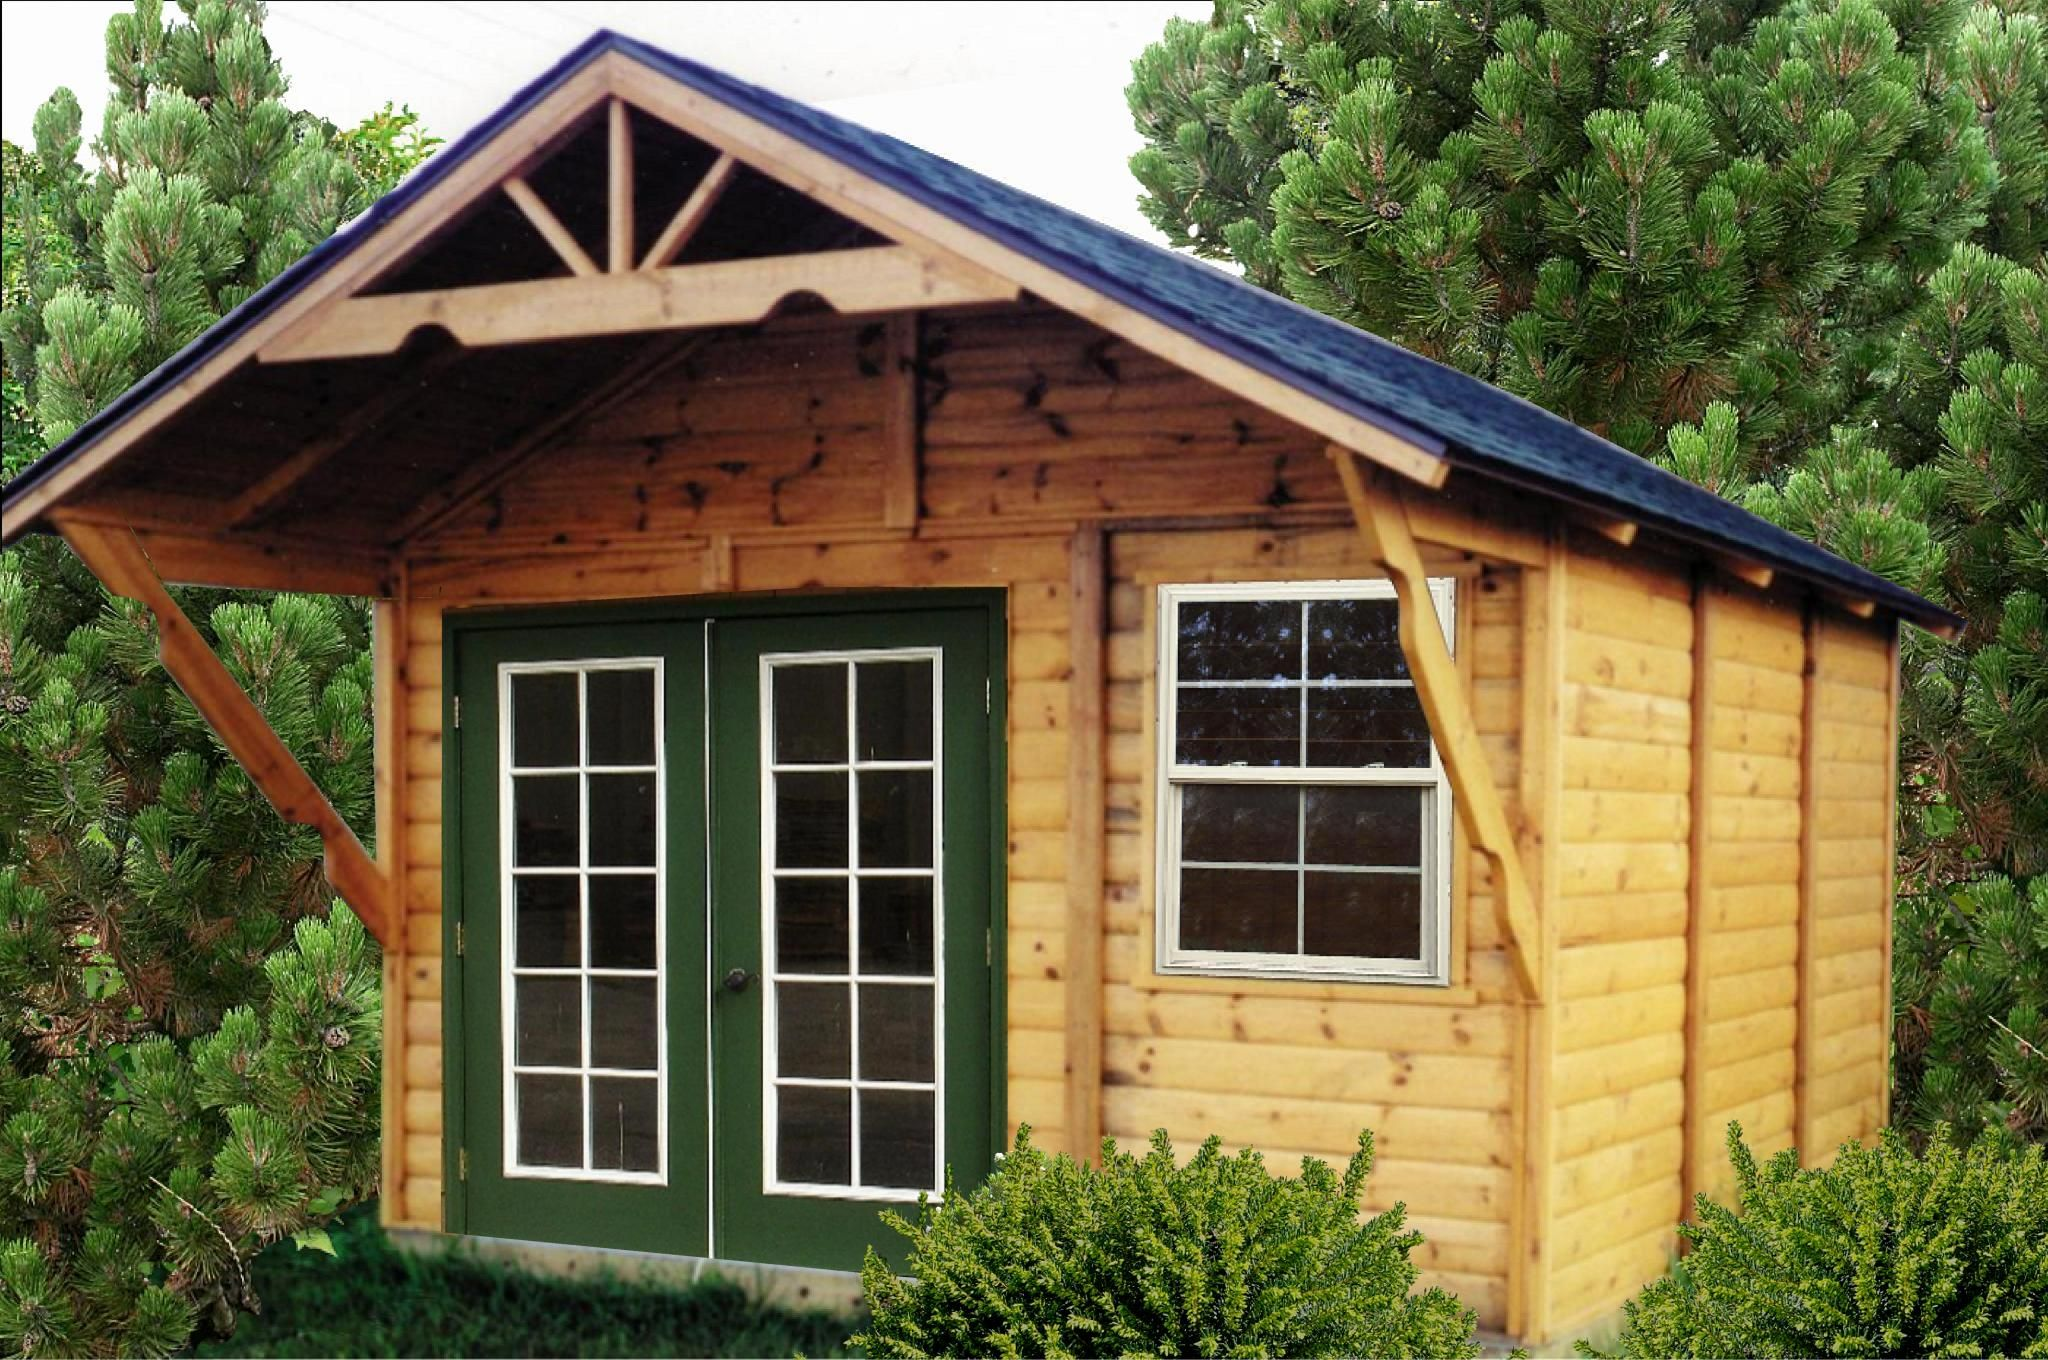 Garden shed ideas wooden storage shed plans home for Garden shed pictures